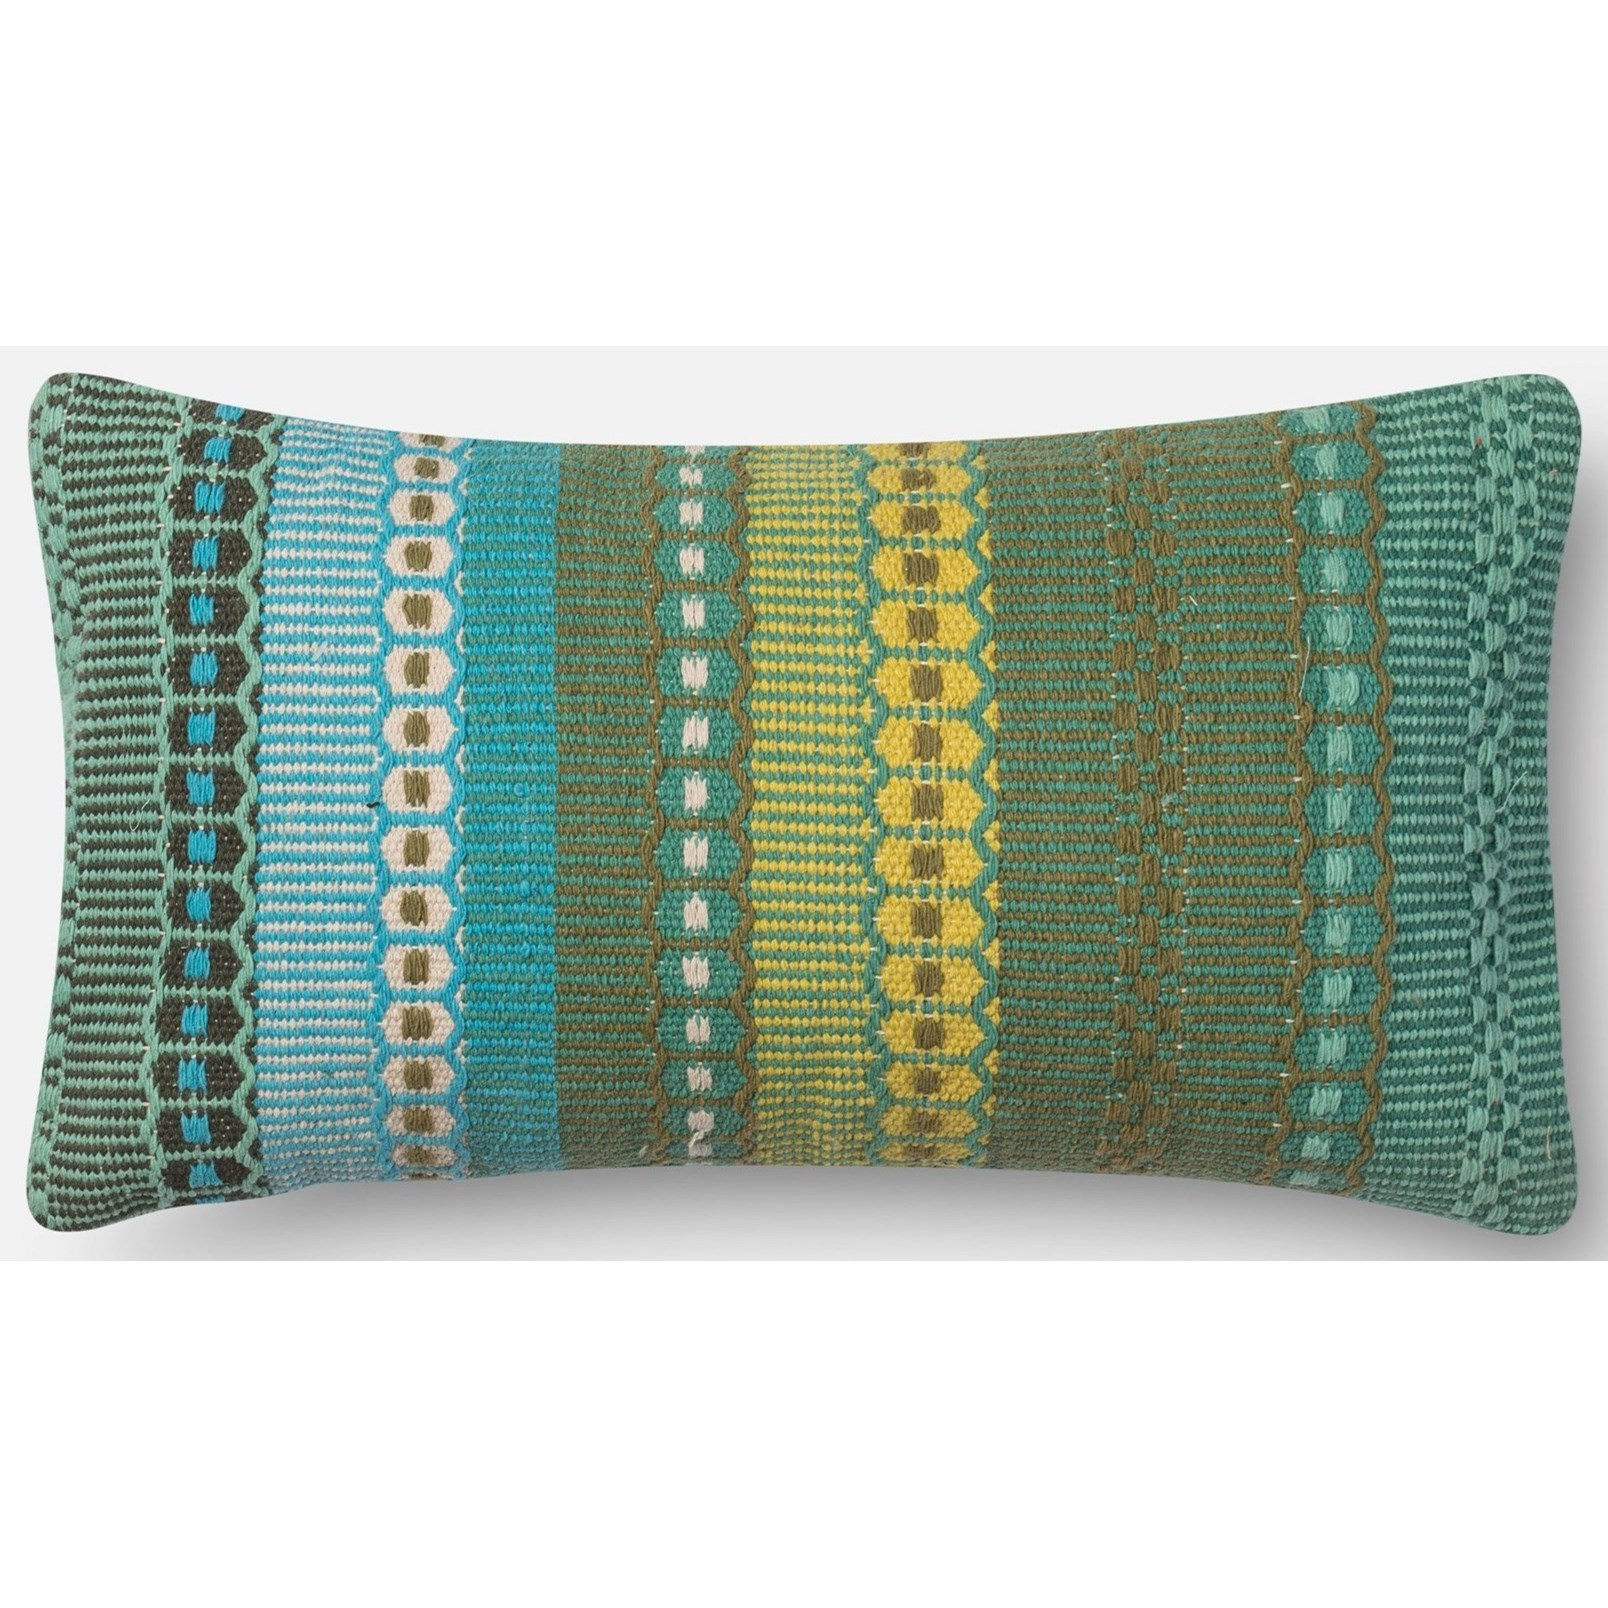 "Accent Pillows 1' X 1'-10"" Cover w/Poly by Loloi Rugs at Virginia Furniture Market"